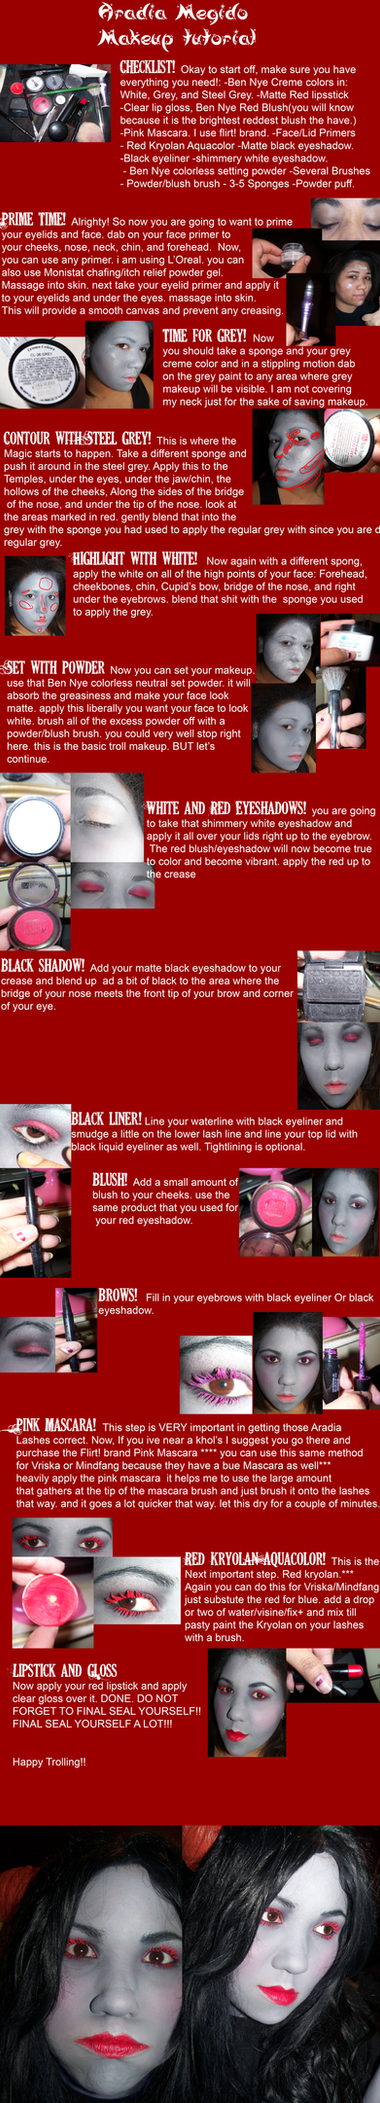 Aradia Megido Makeup Tutorial by MaliceMidnight